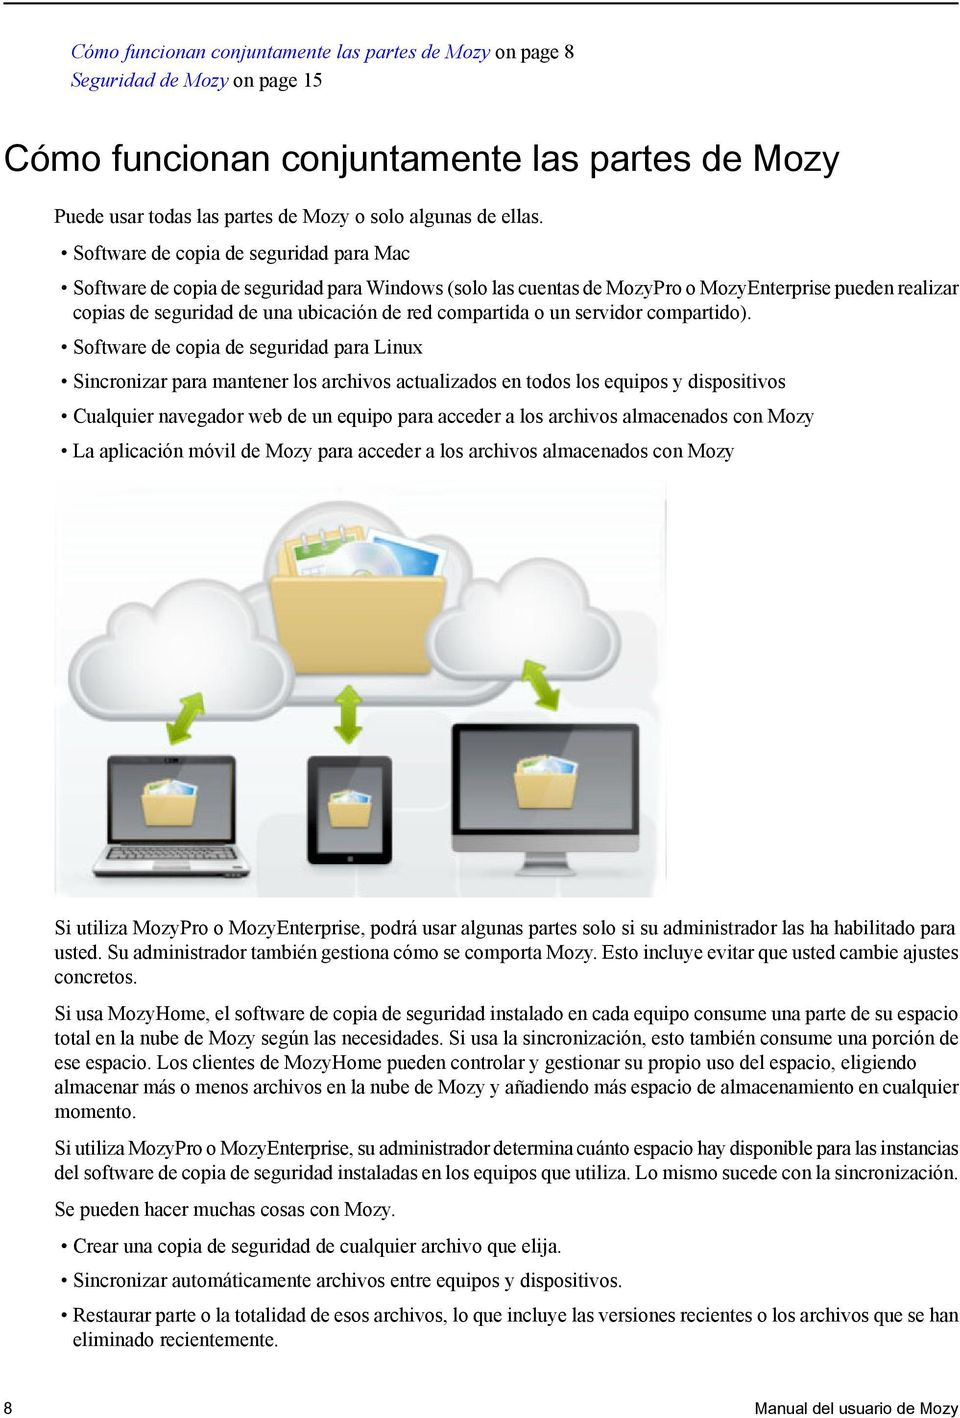 Manual del usuario de Mozy Published: - PDF